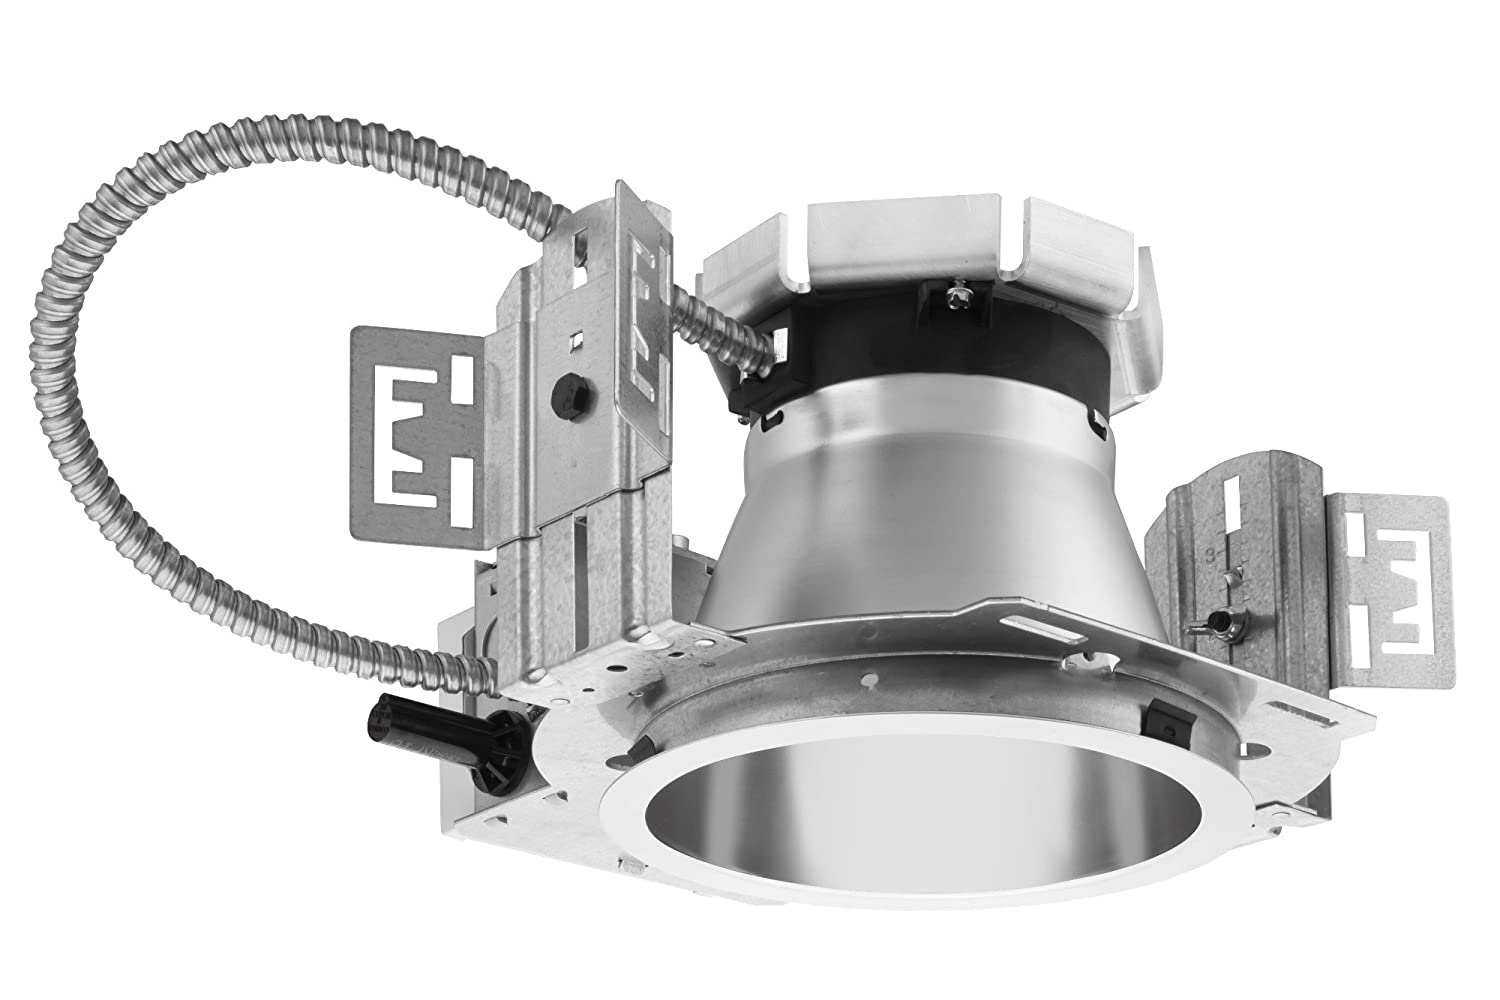 Lithonia Lighting Ldn6 35 15 277 Hsg Gen 1 6 Inch 3500k Wiring A Can Light Led Recessed Housing Home Improvement